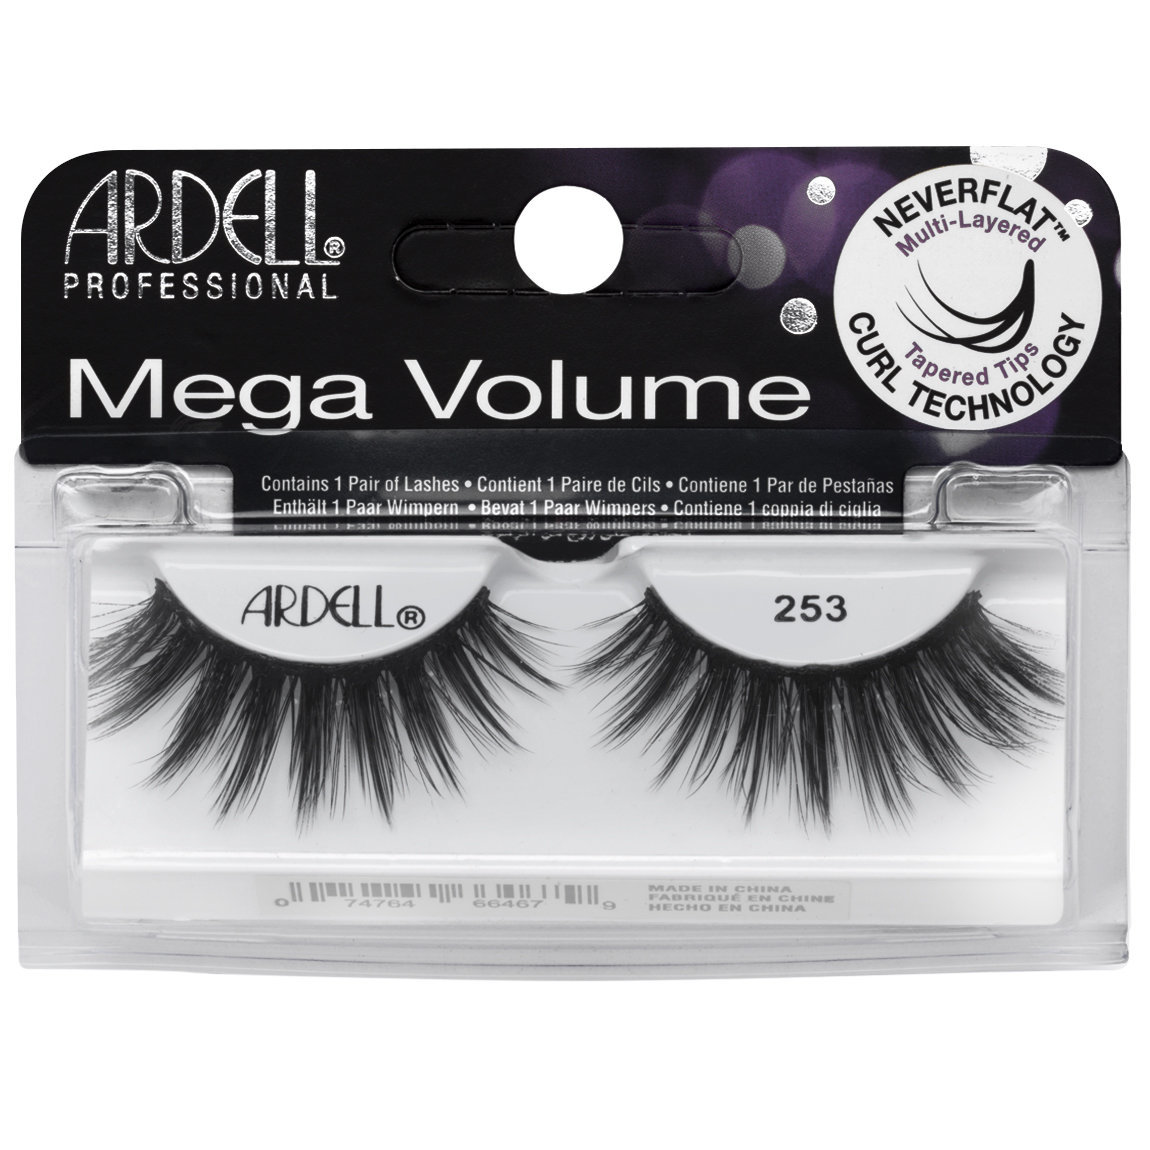 Ardell Mega Volume Lashes 253 alternative view 1.